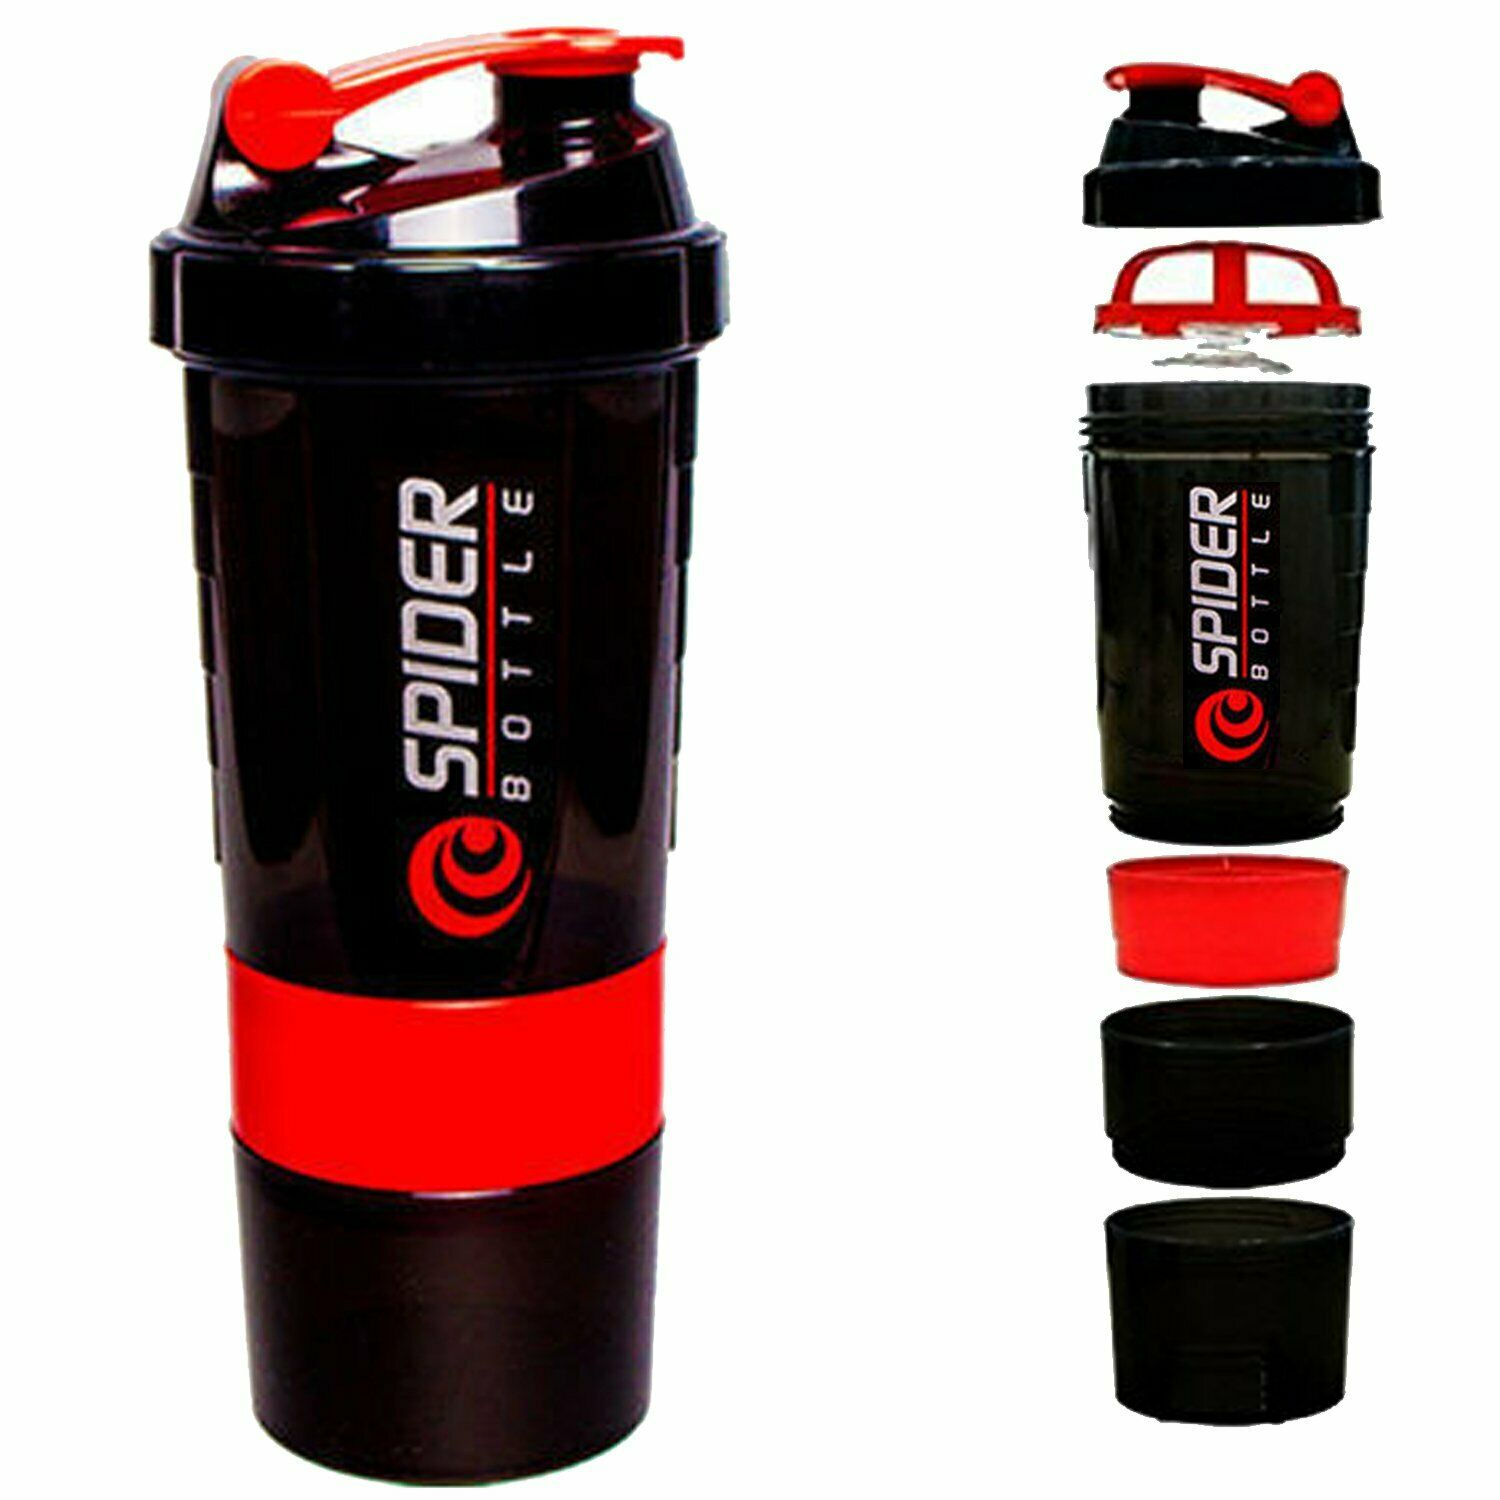 Spider-Smart-Protein-Shaker-Bottle